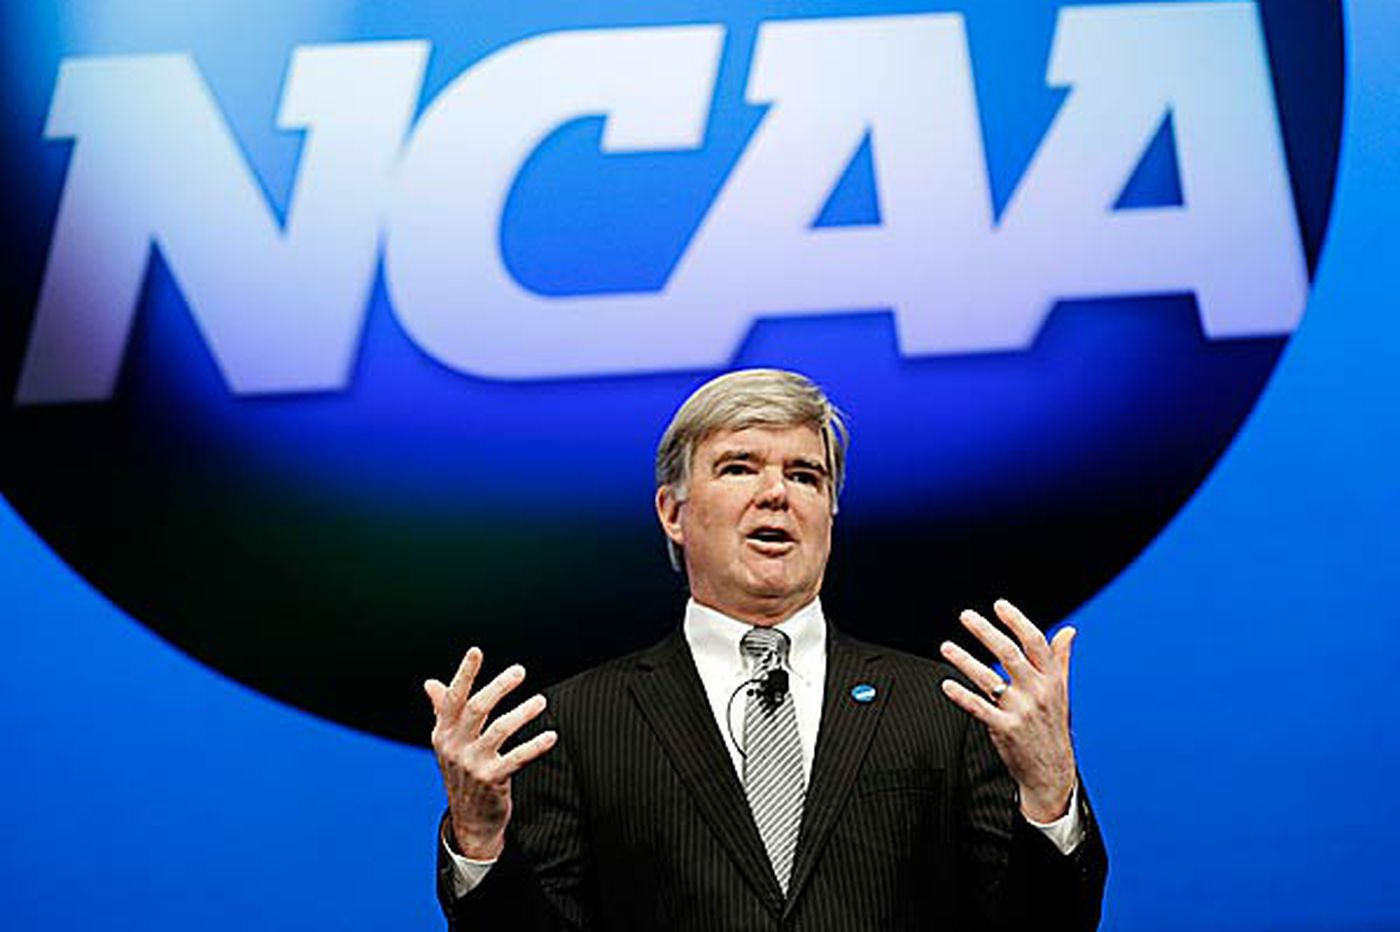 NCAA a shameful sham